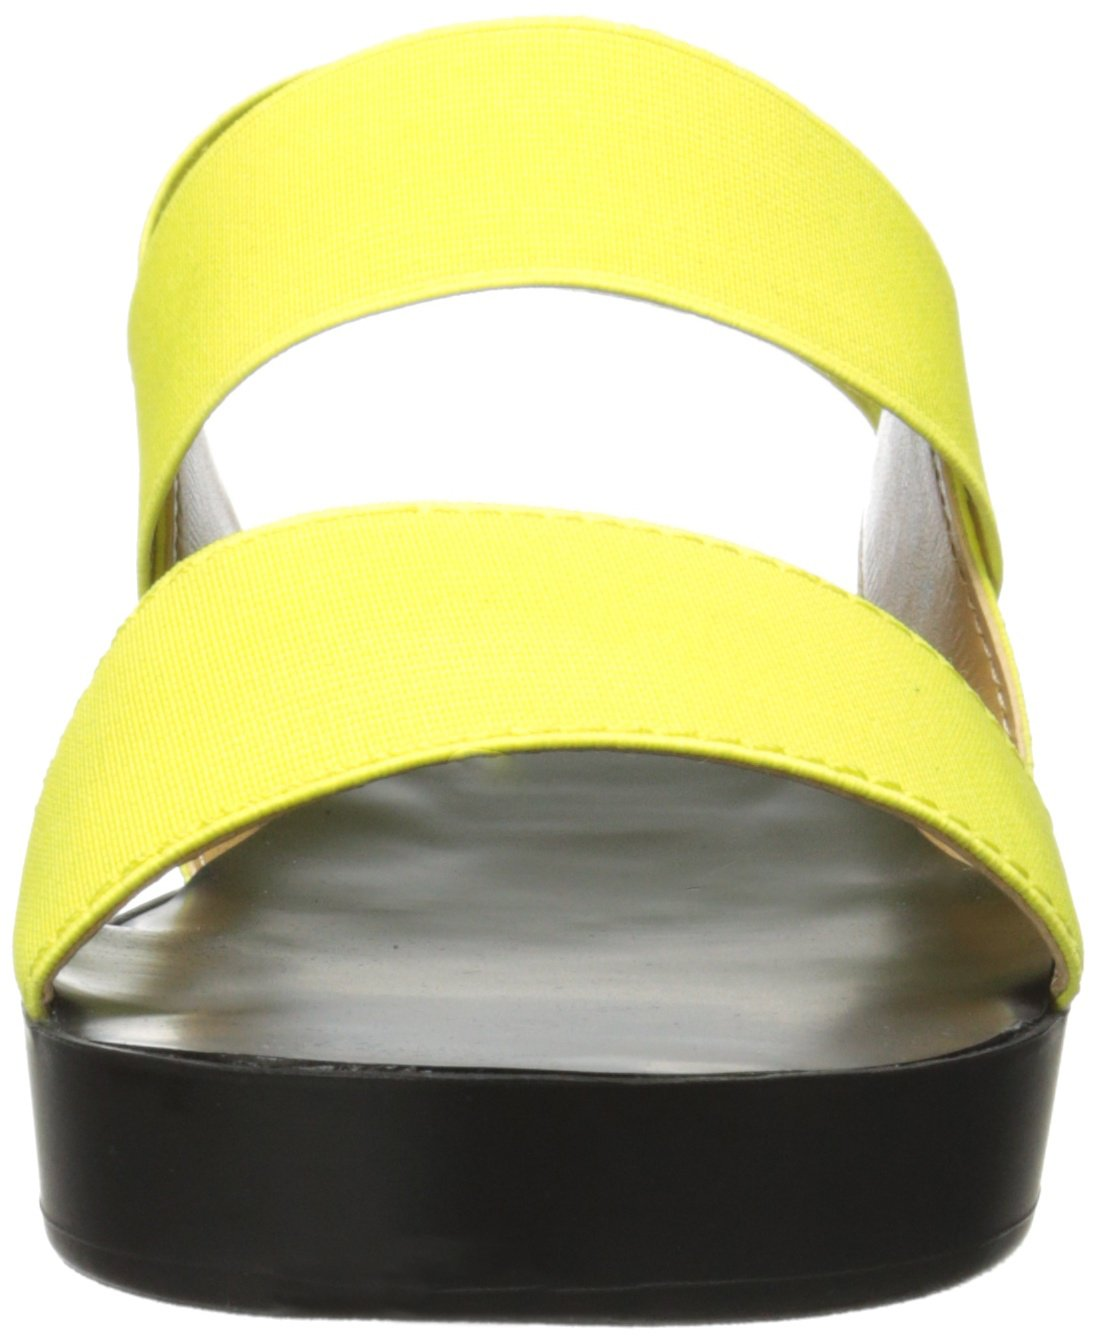 Report Sandal Signature Women's Broc Platform Sandal Report B00N442836 7 B(M) US|Yellow d1f346